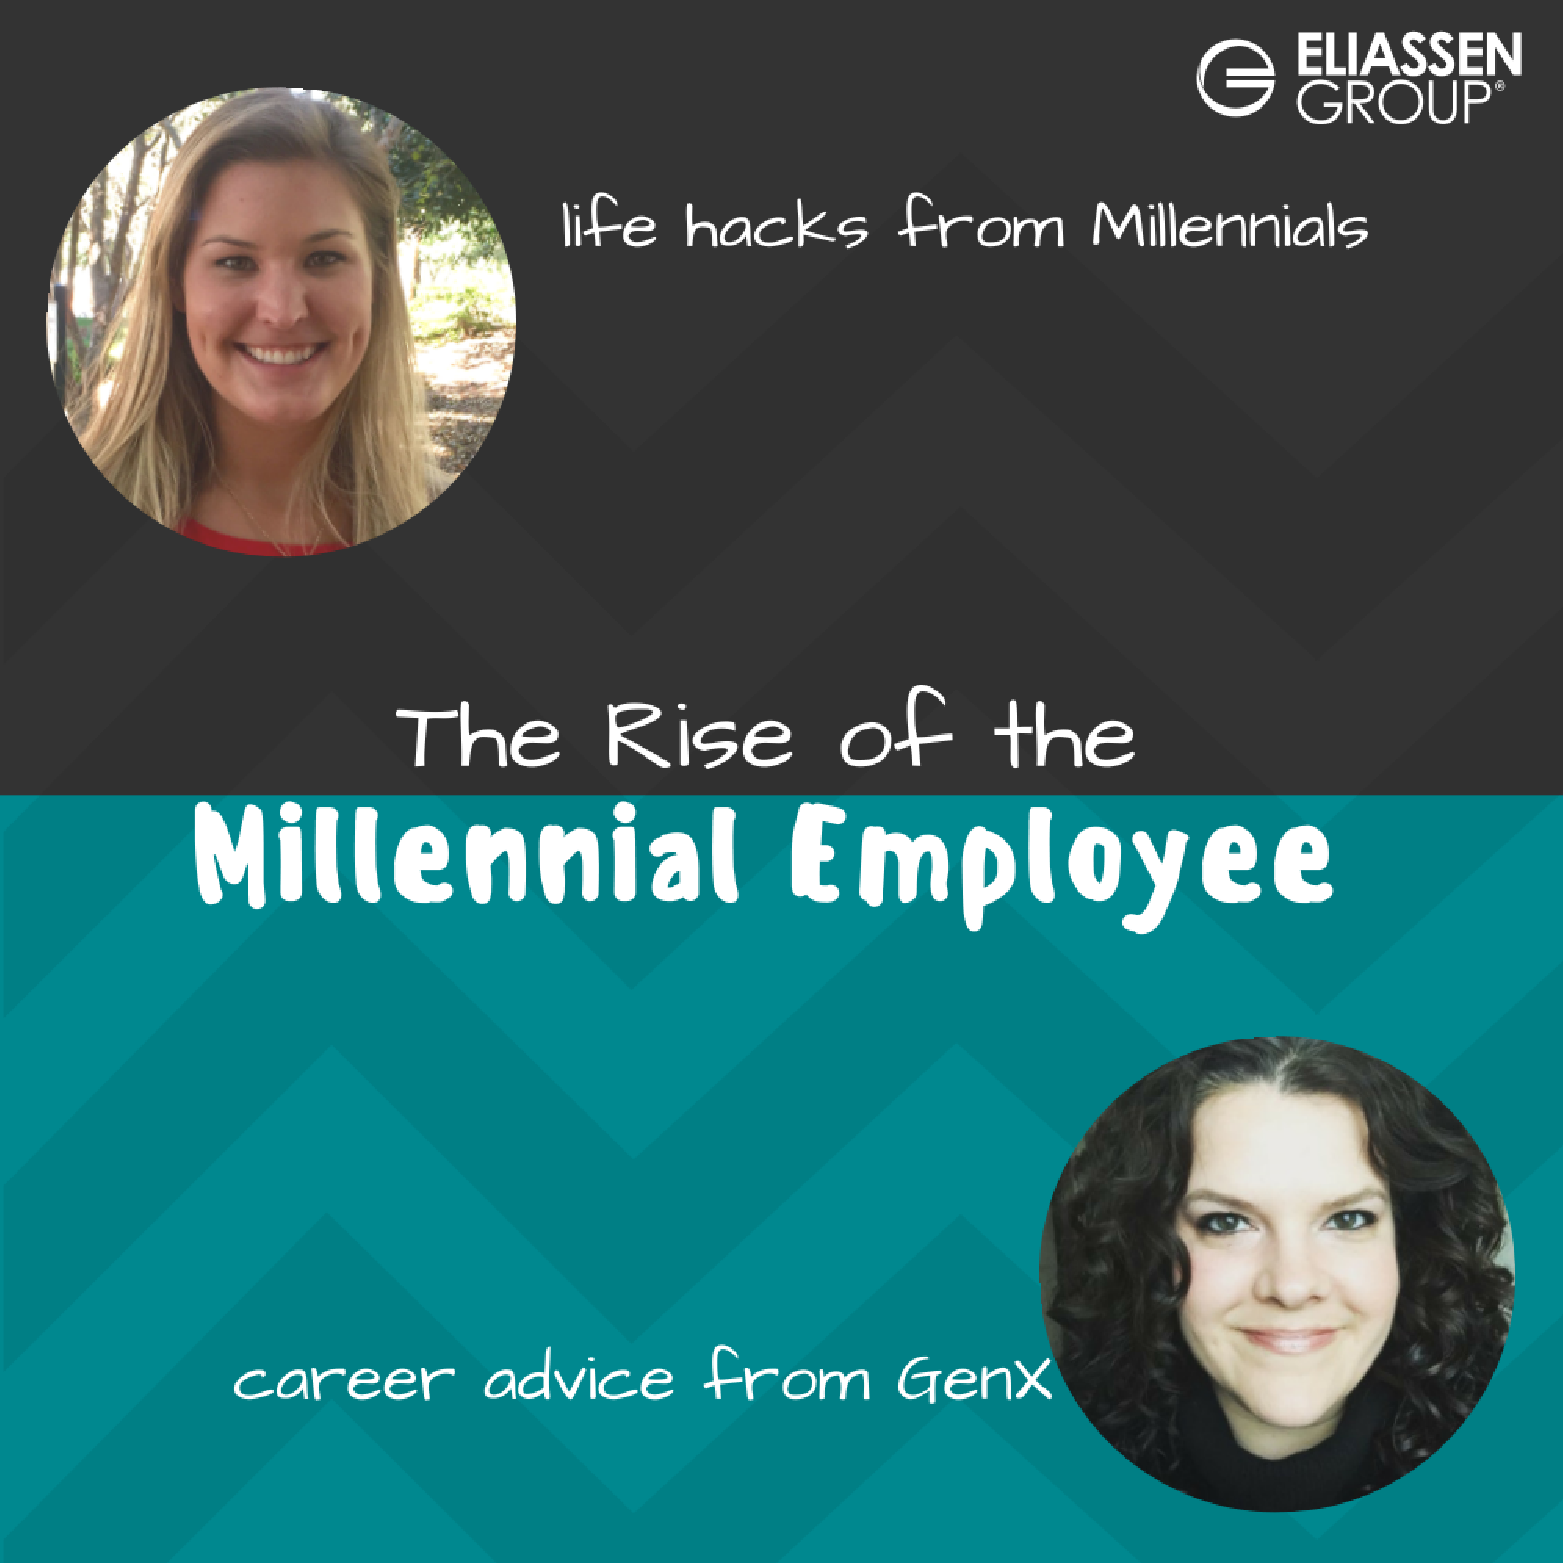 Life Hack: Working with Millennials